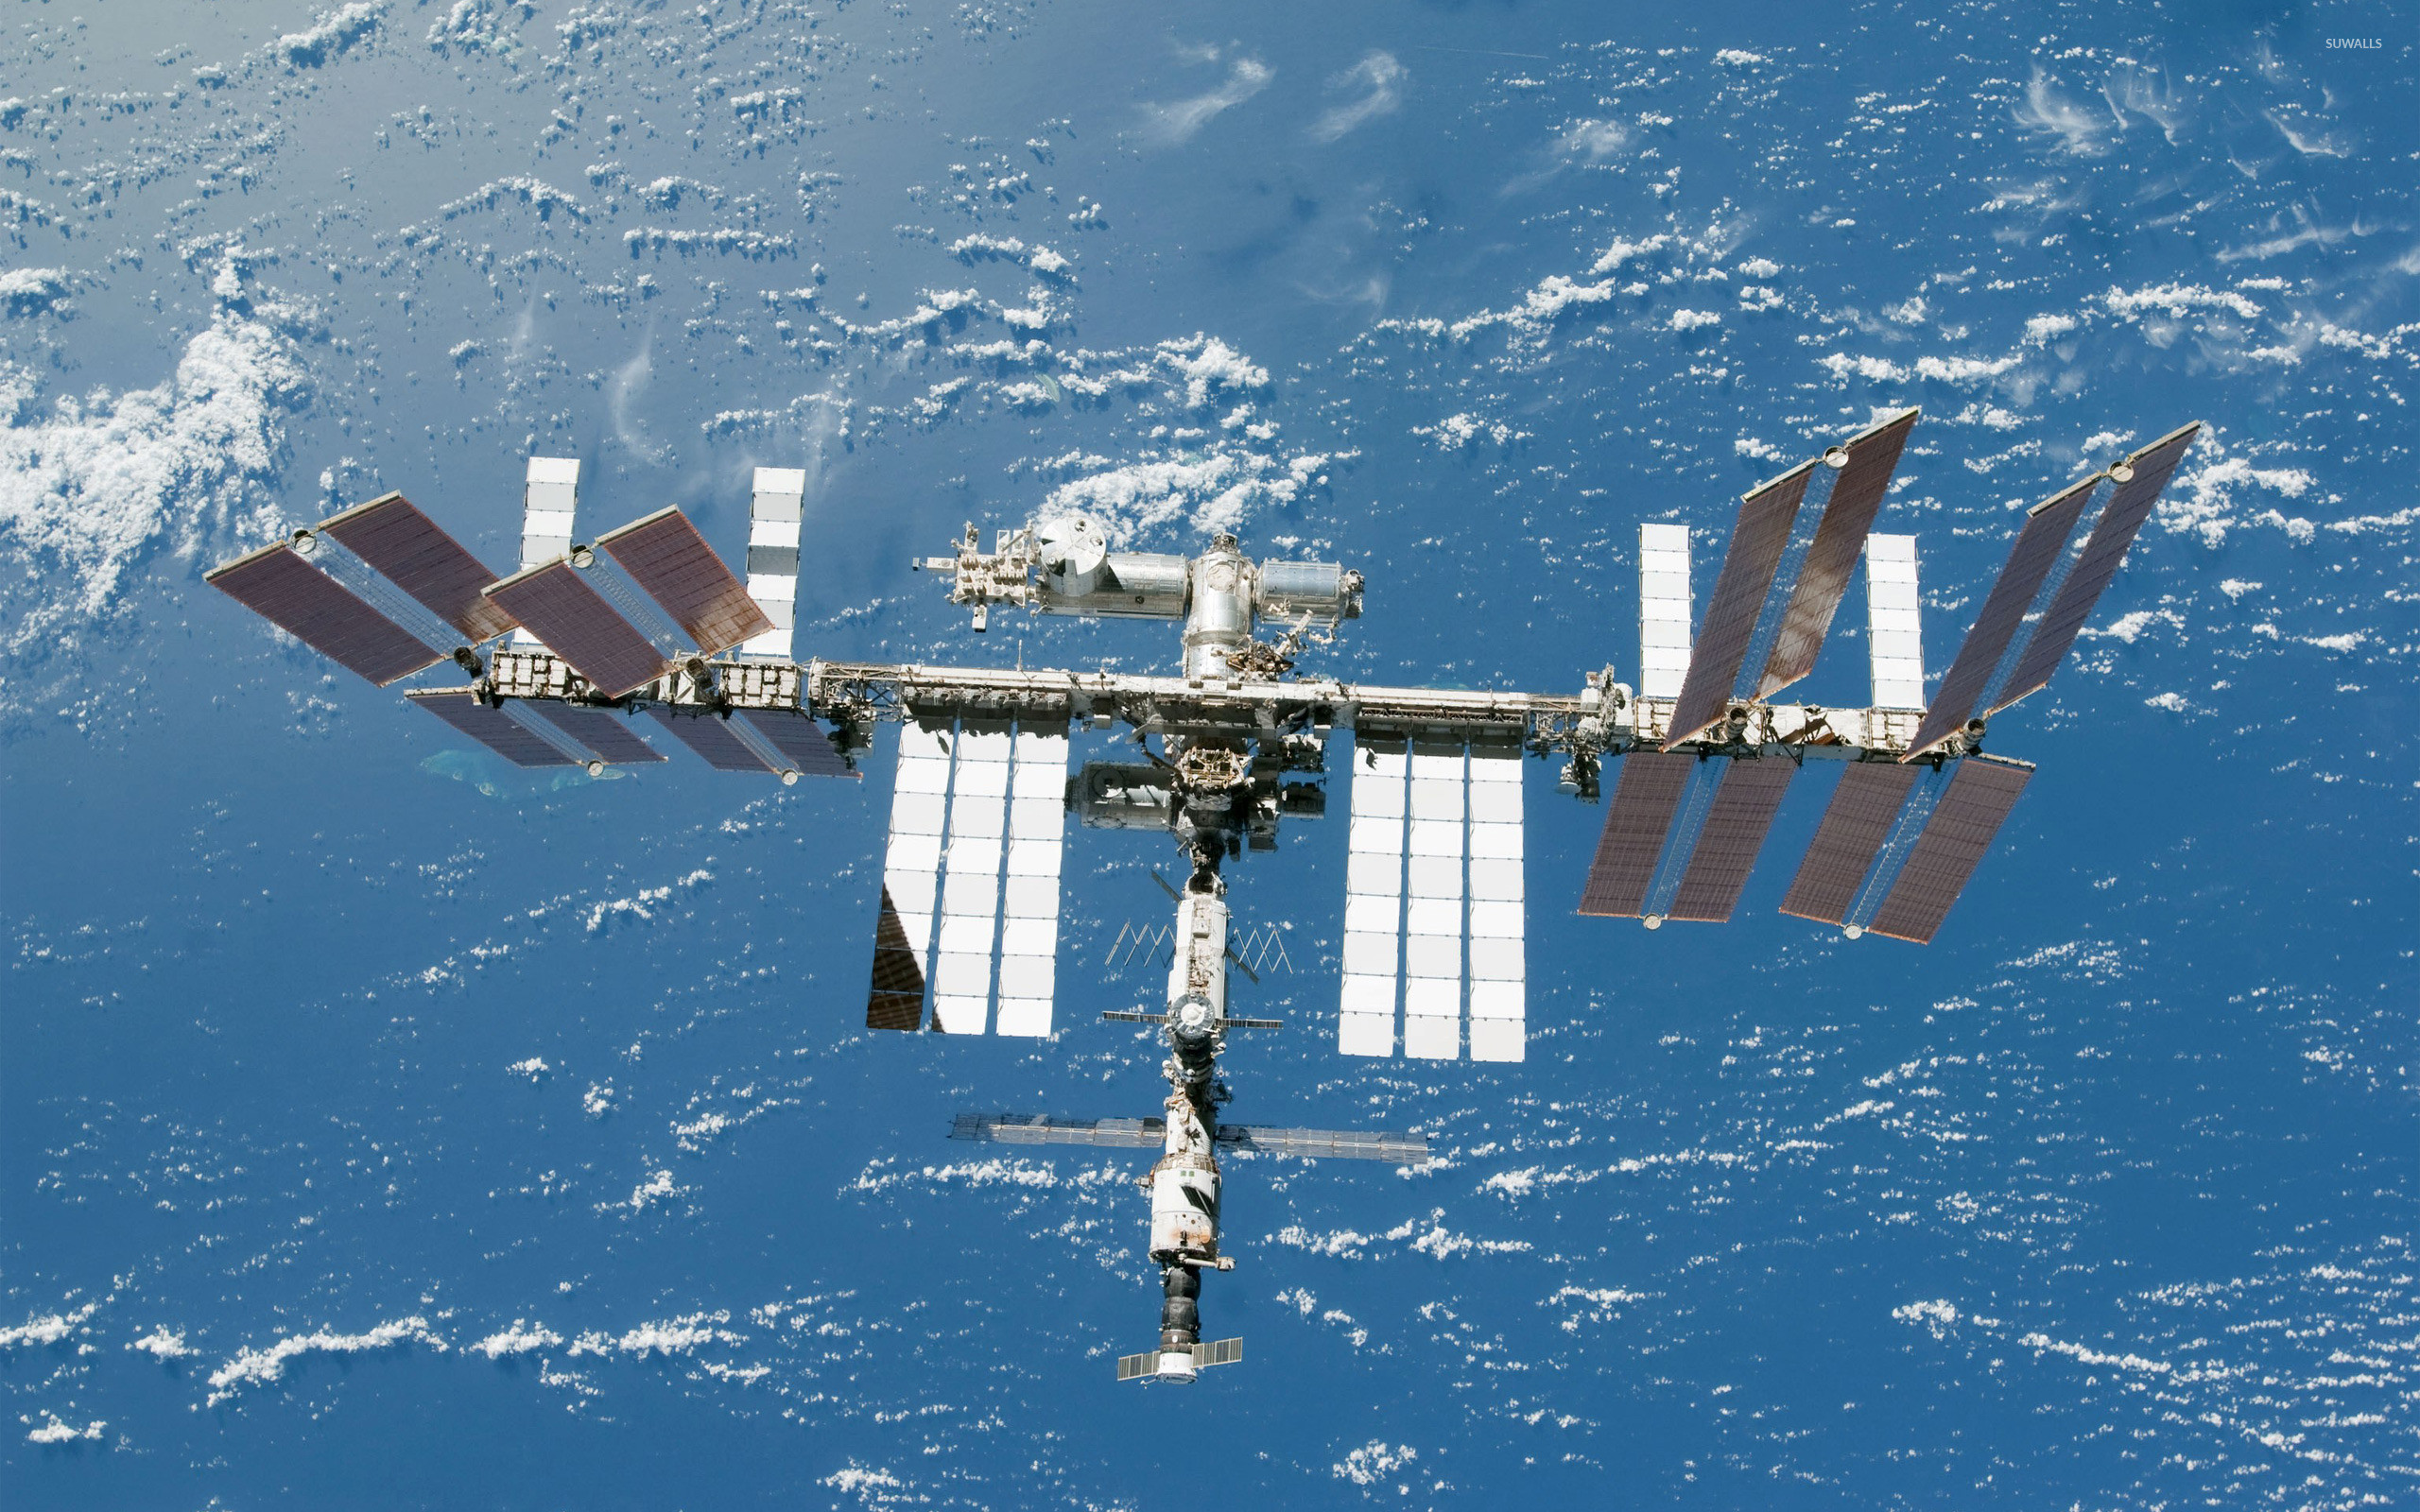 2560x1600 International Space Station [5] wallpaper  jpg